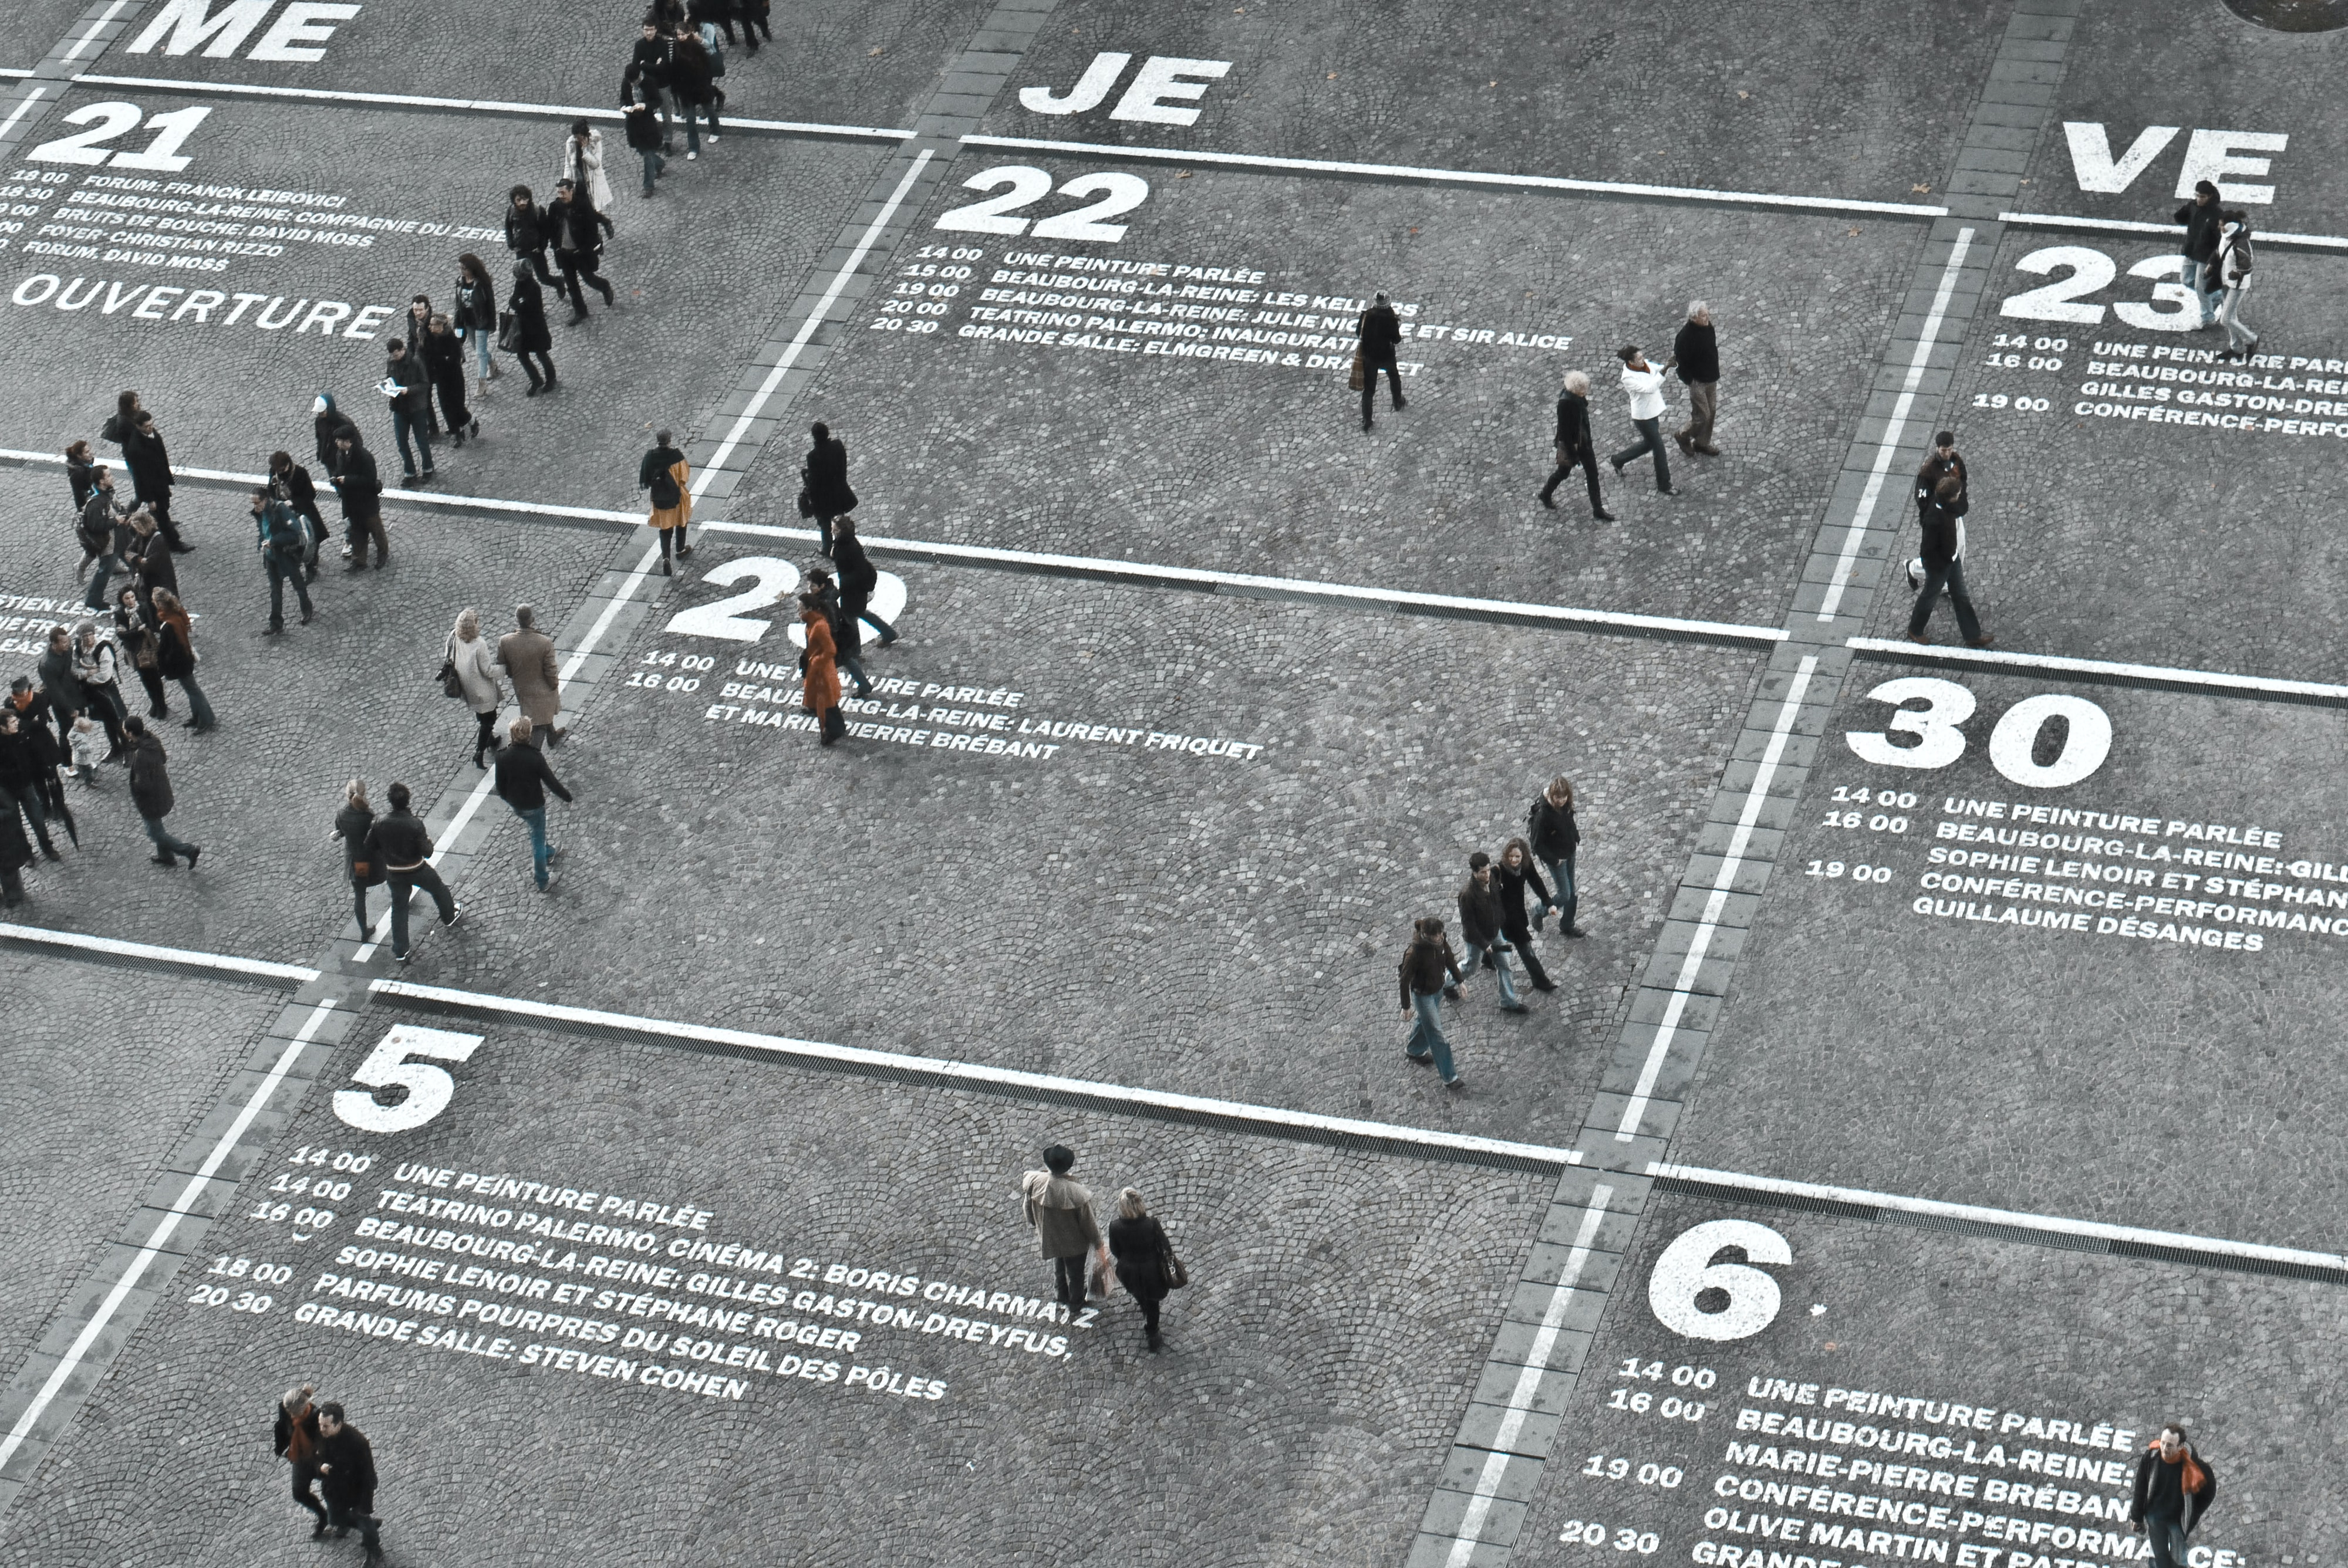 A large field turned into a calendar with a volume of people walking around at The Centre Pompidou